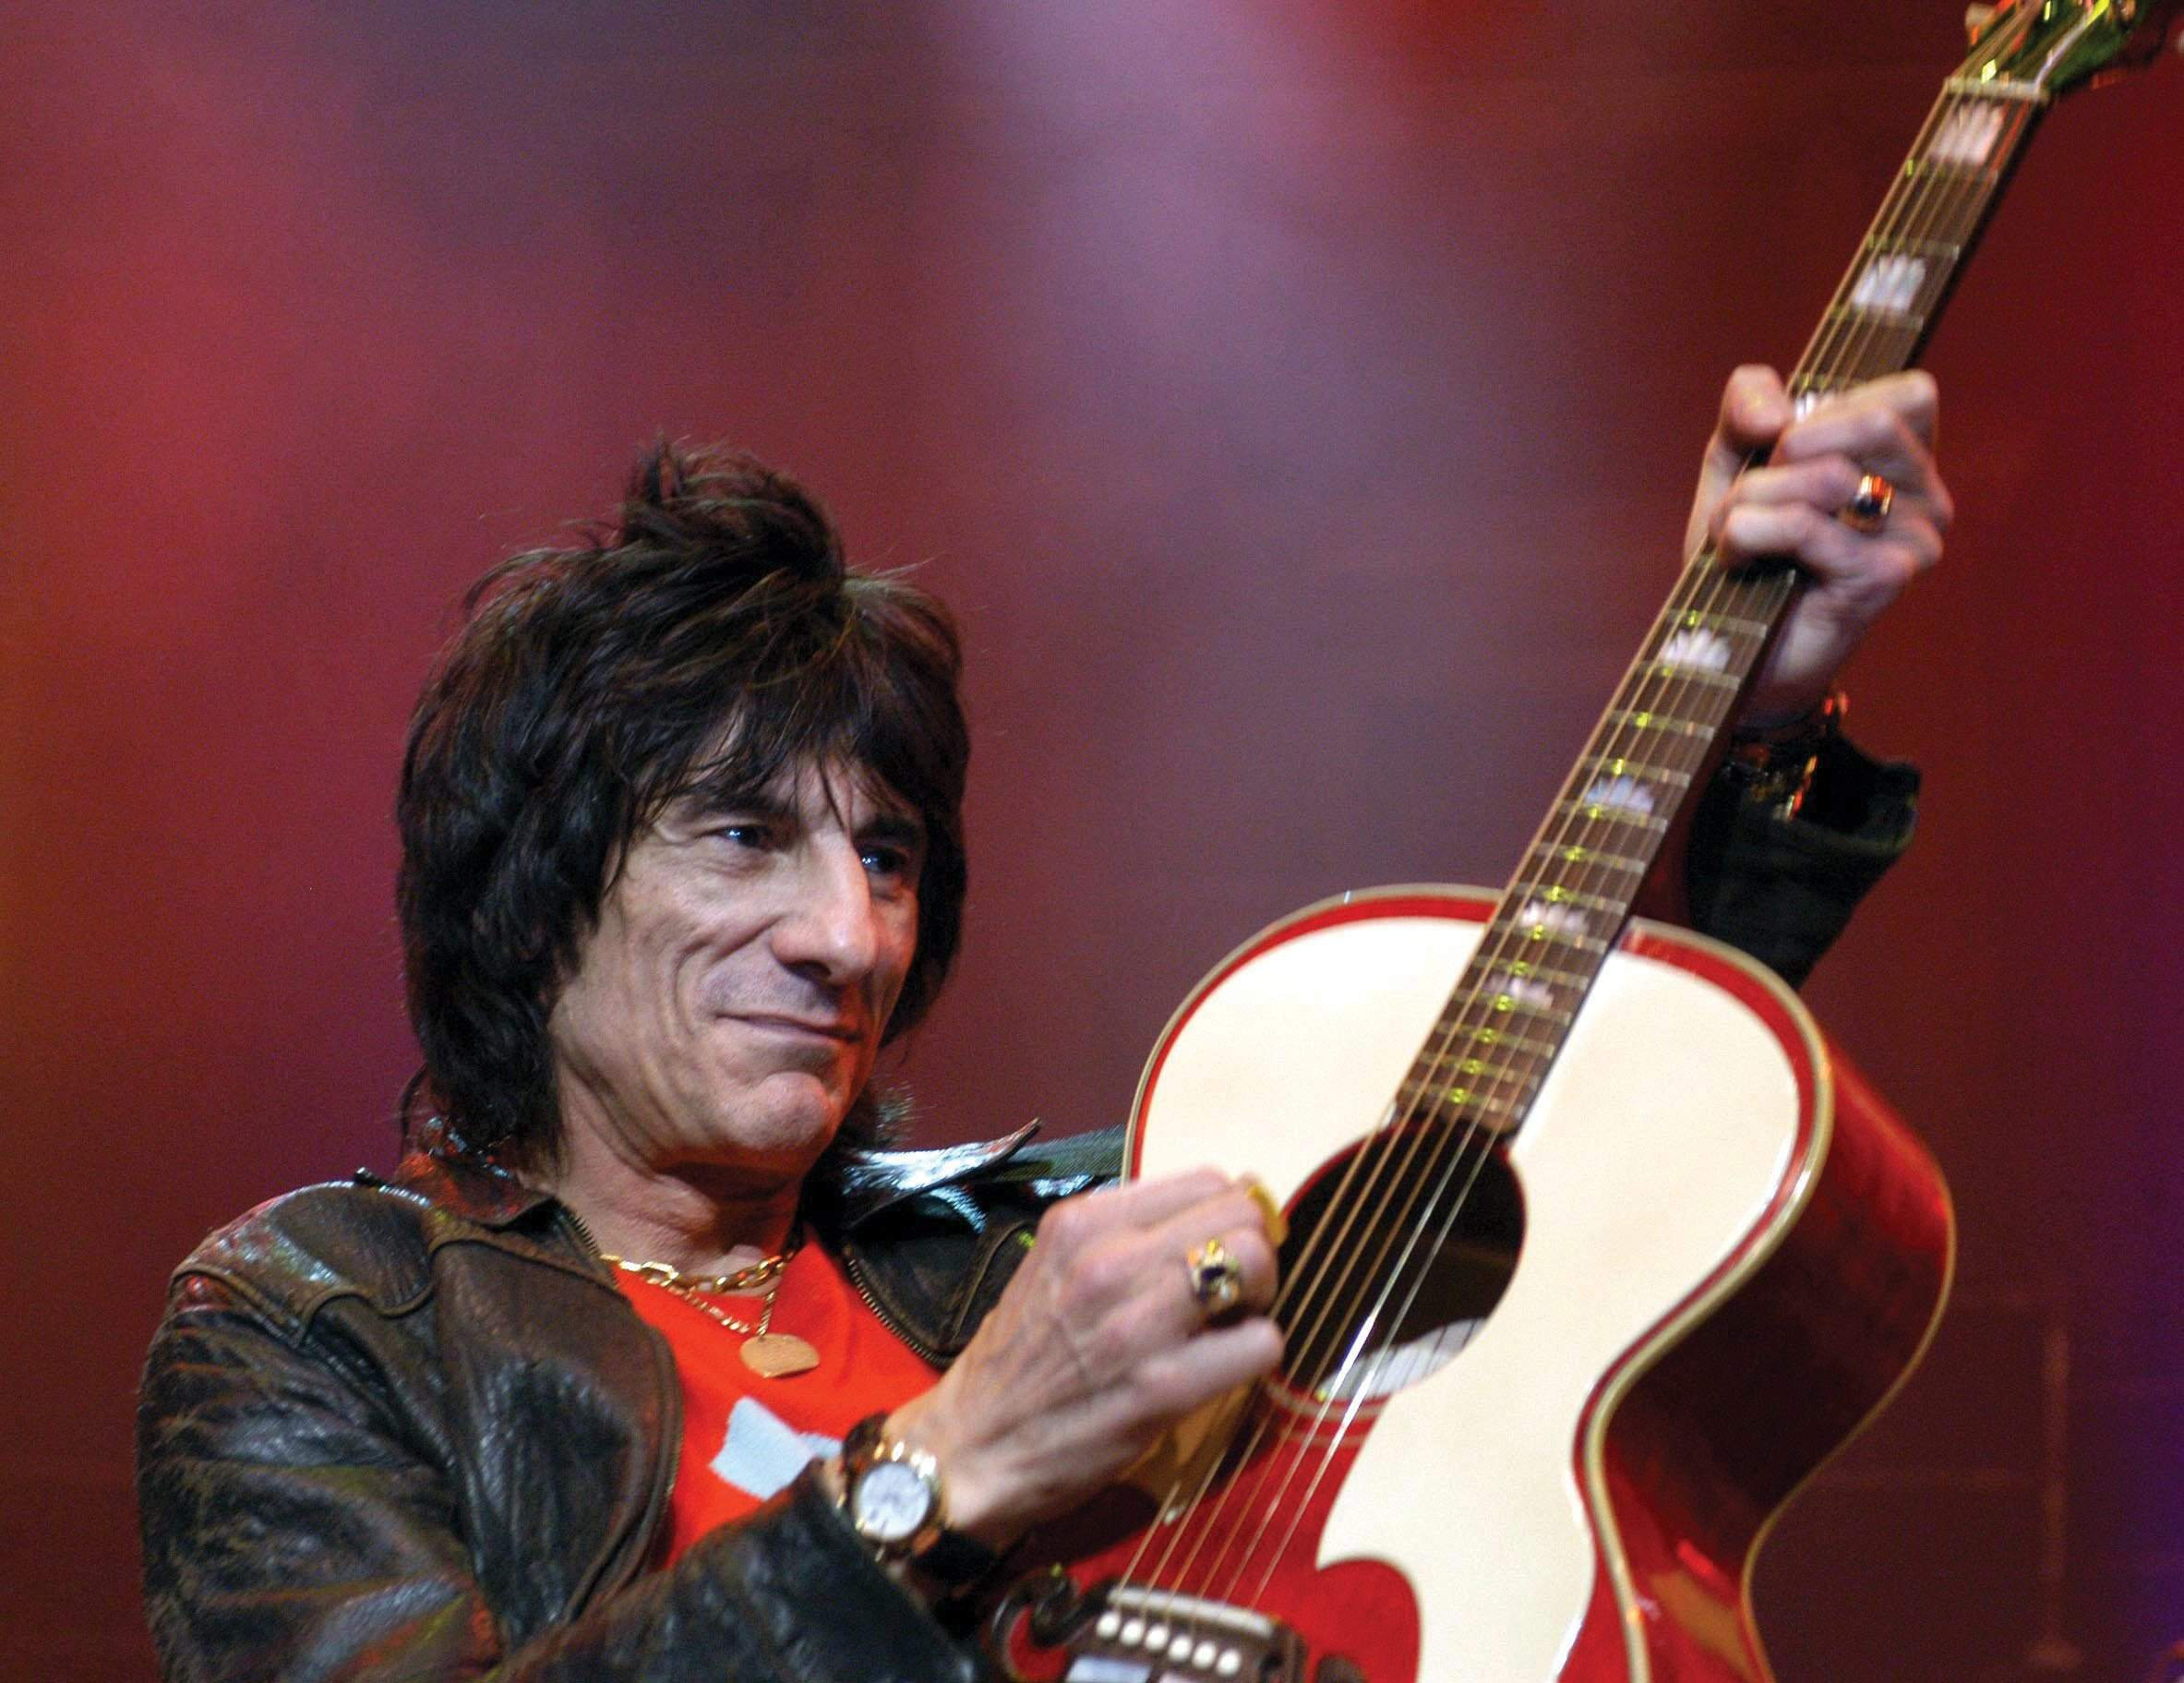 Rolling Stone bassist Ronnie Wood plans to perform at the Golden Nugget in Atlantic City as a favor for friends.<br /><br />BRIAN RASIC / Rex features